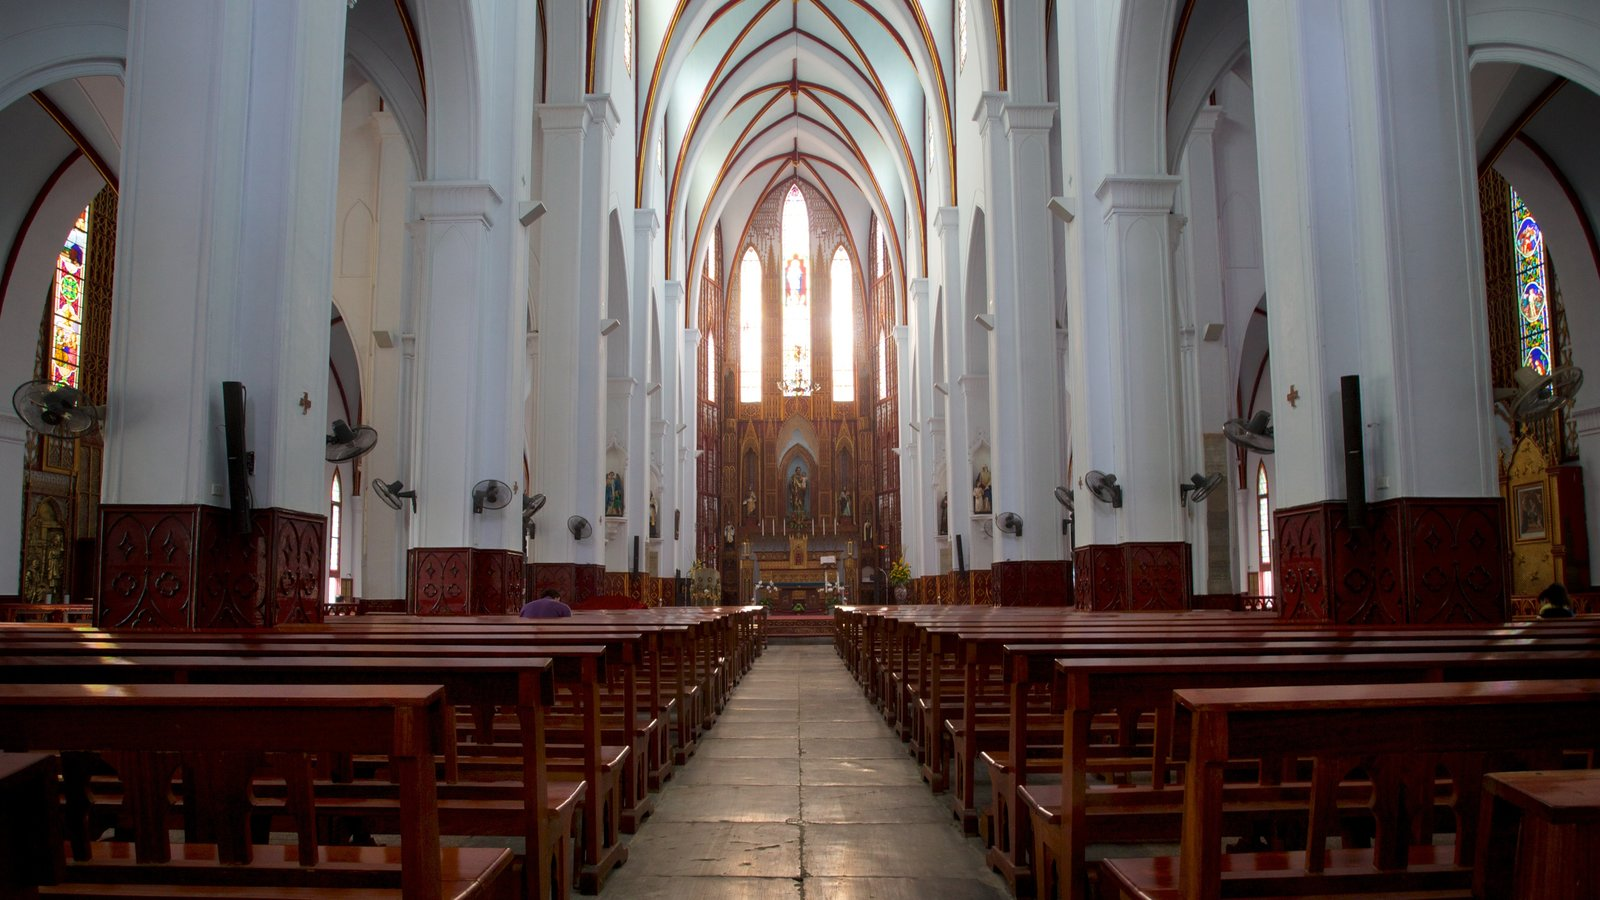 St. Joseph Cathedral which includes religious aspects, interior views and a church or cathedral